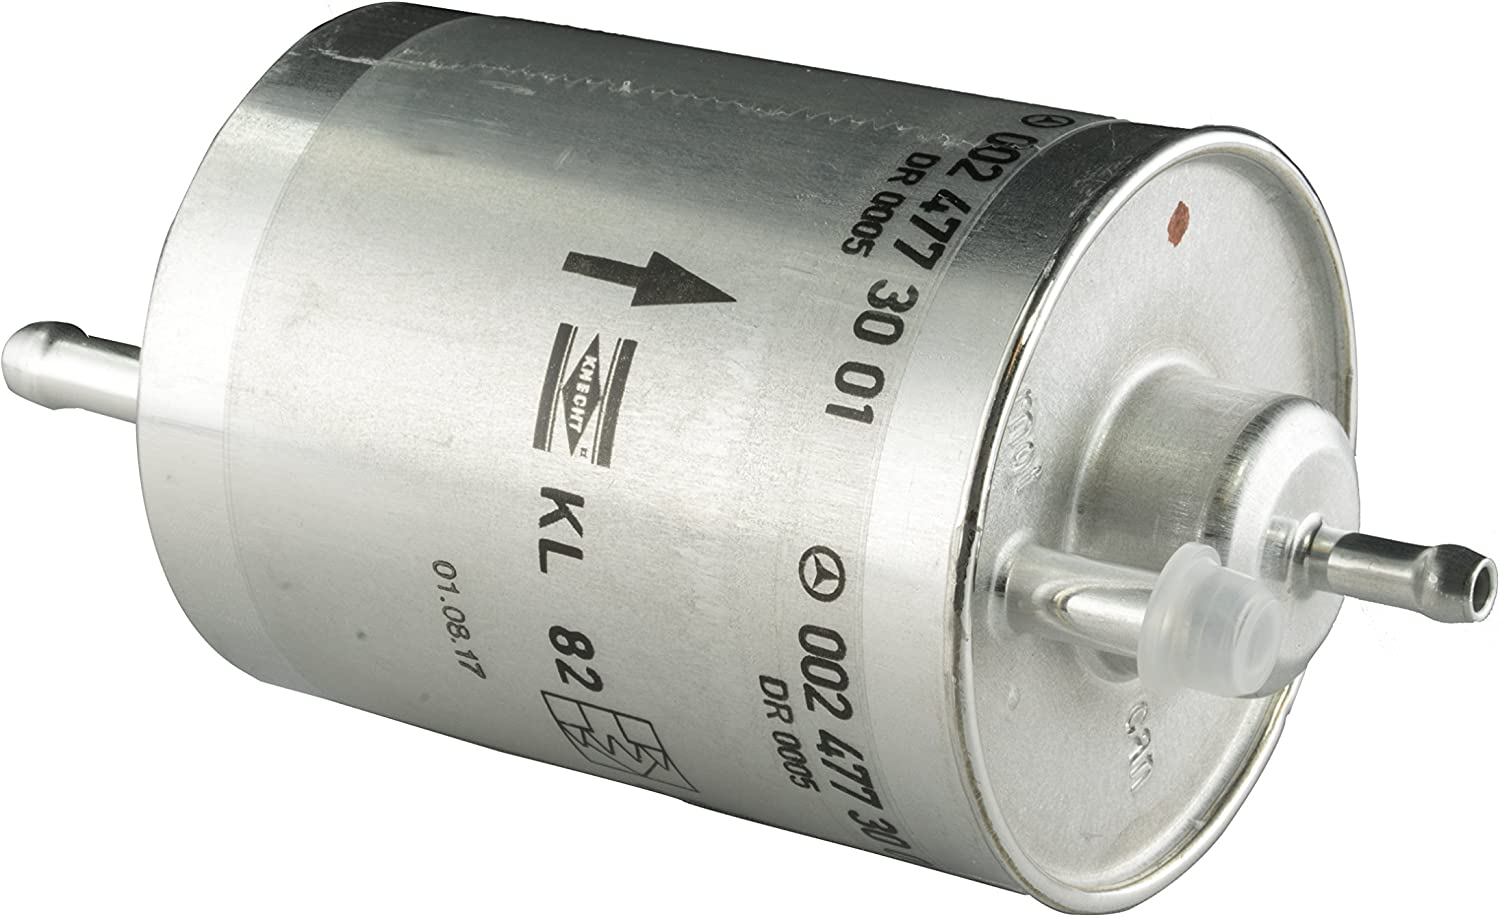 amazon.com: mercedes-benz 002 477 30 01, fuel filter: automotive  amazon.com